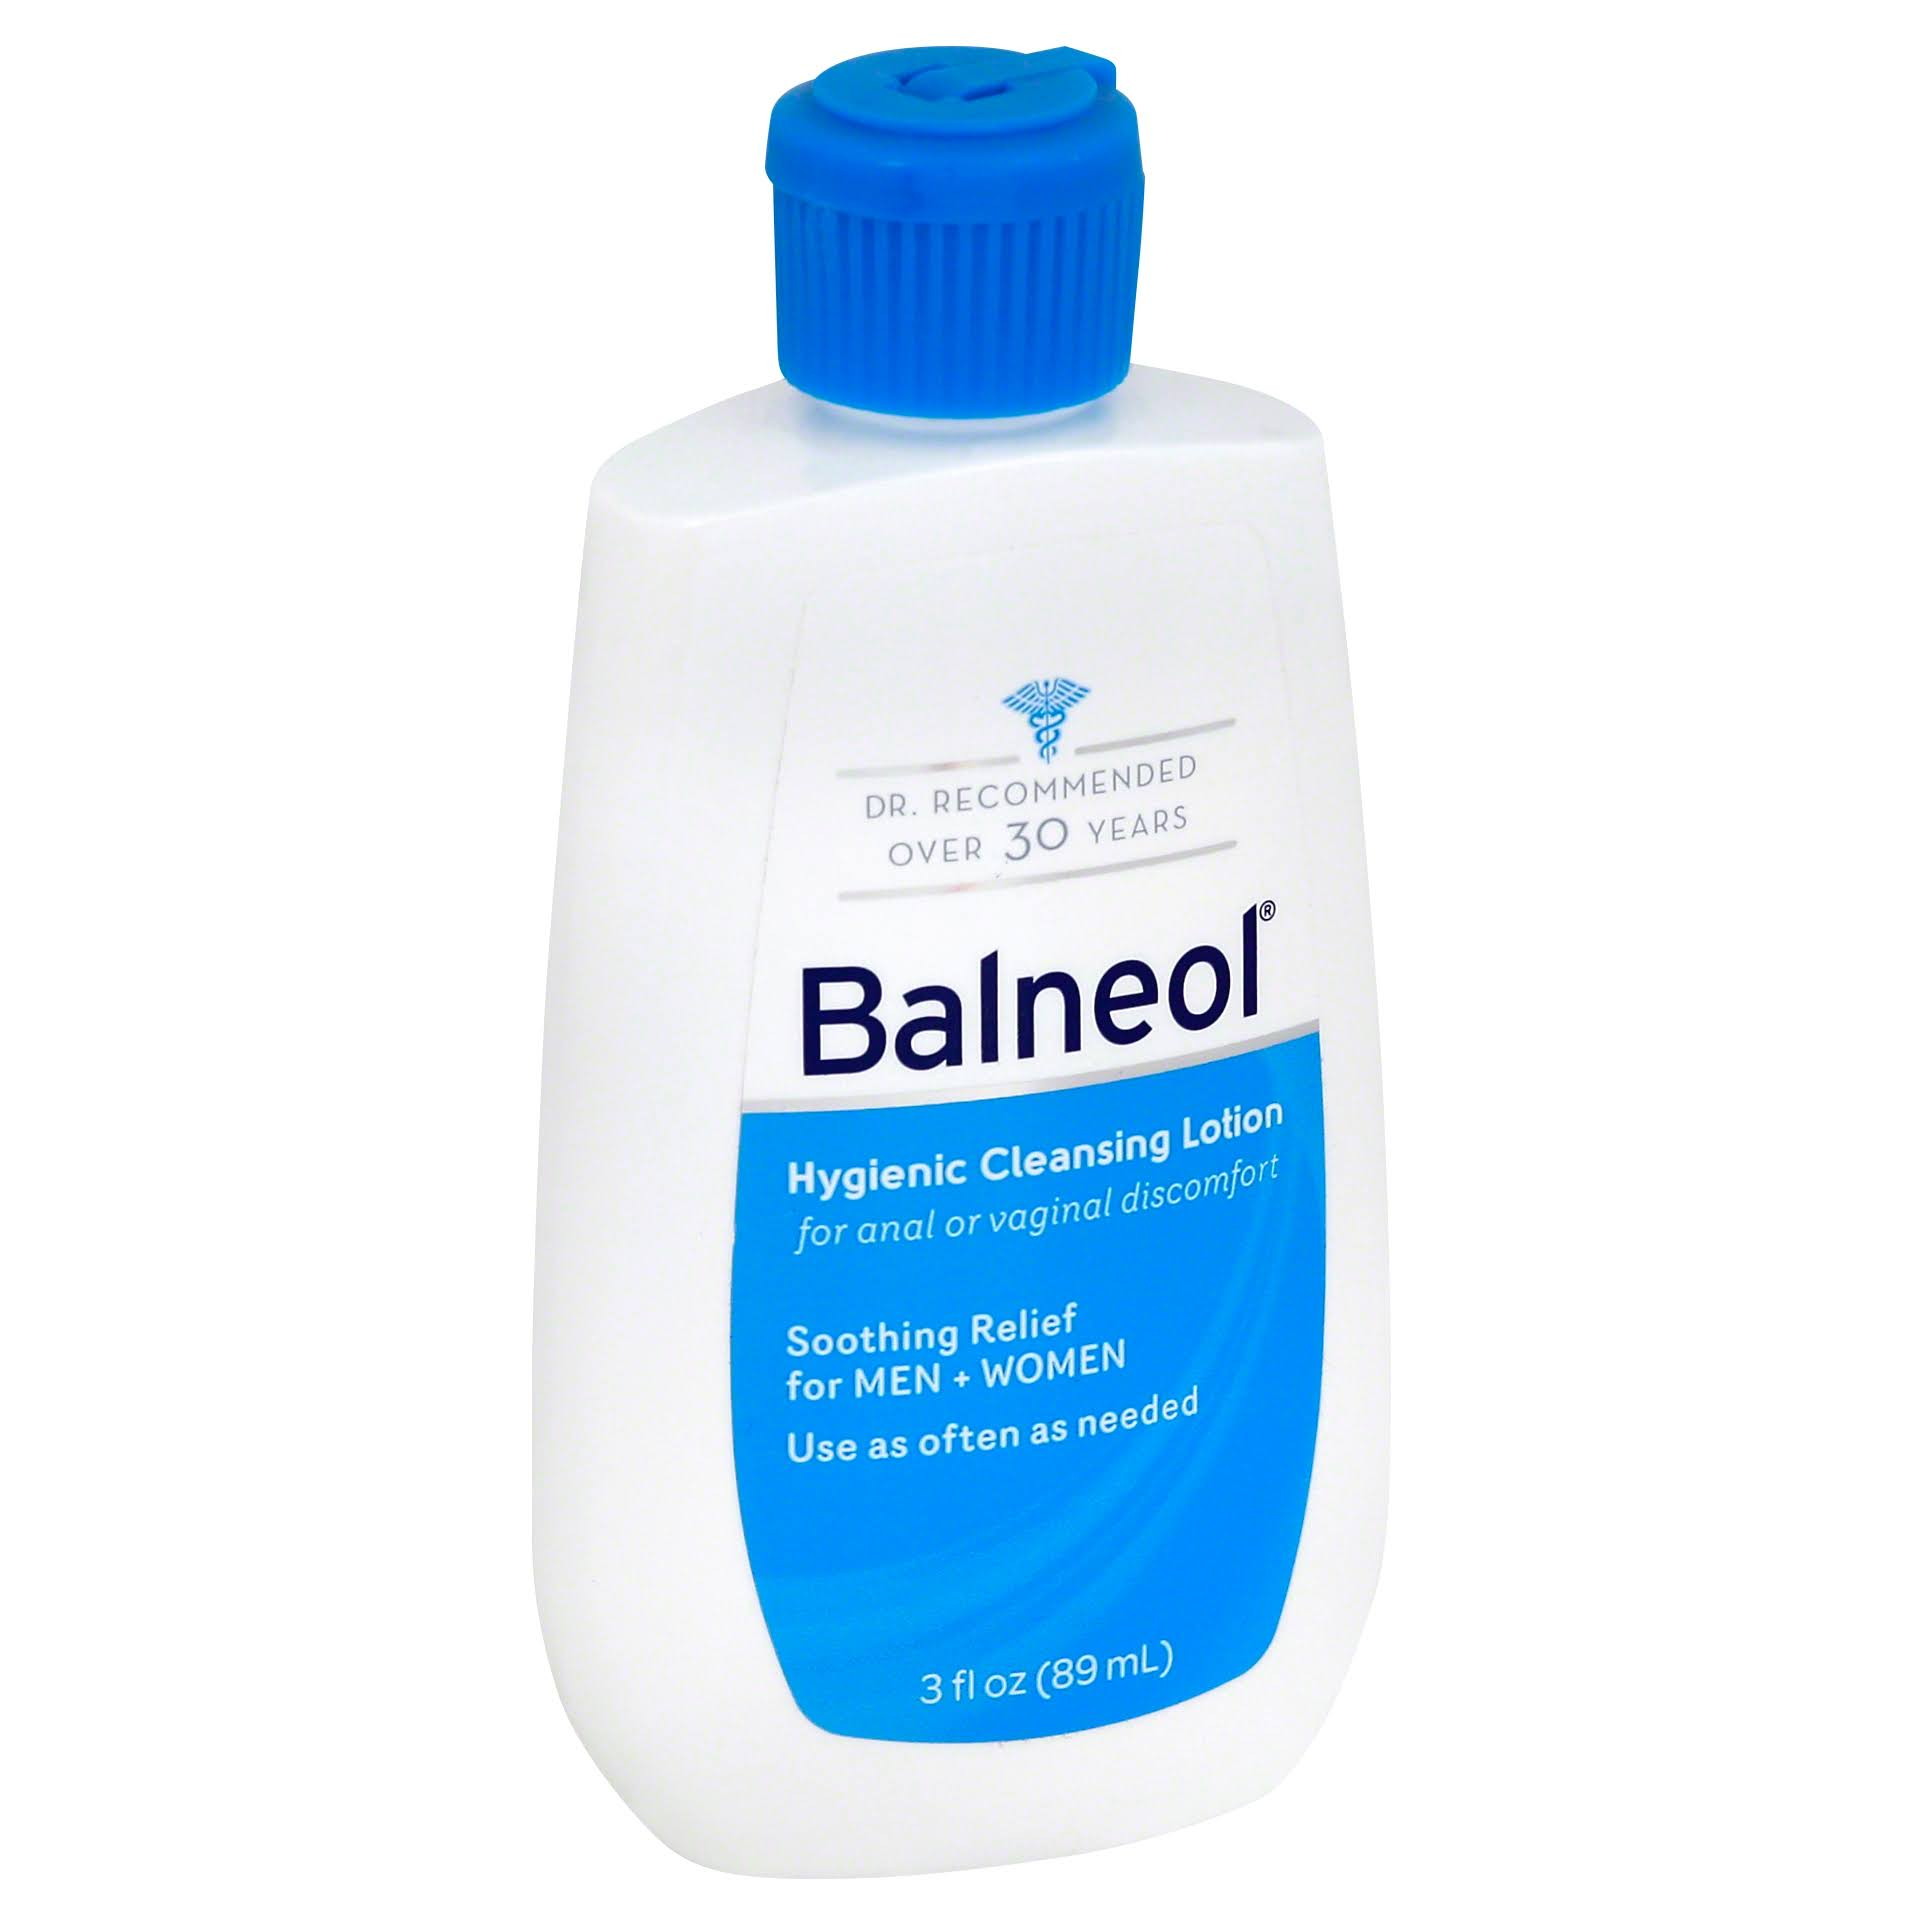 Balneol Hygienic Cleansing Lotion - 89ml